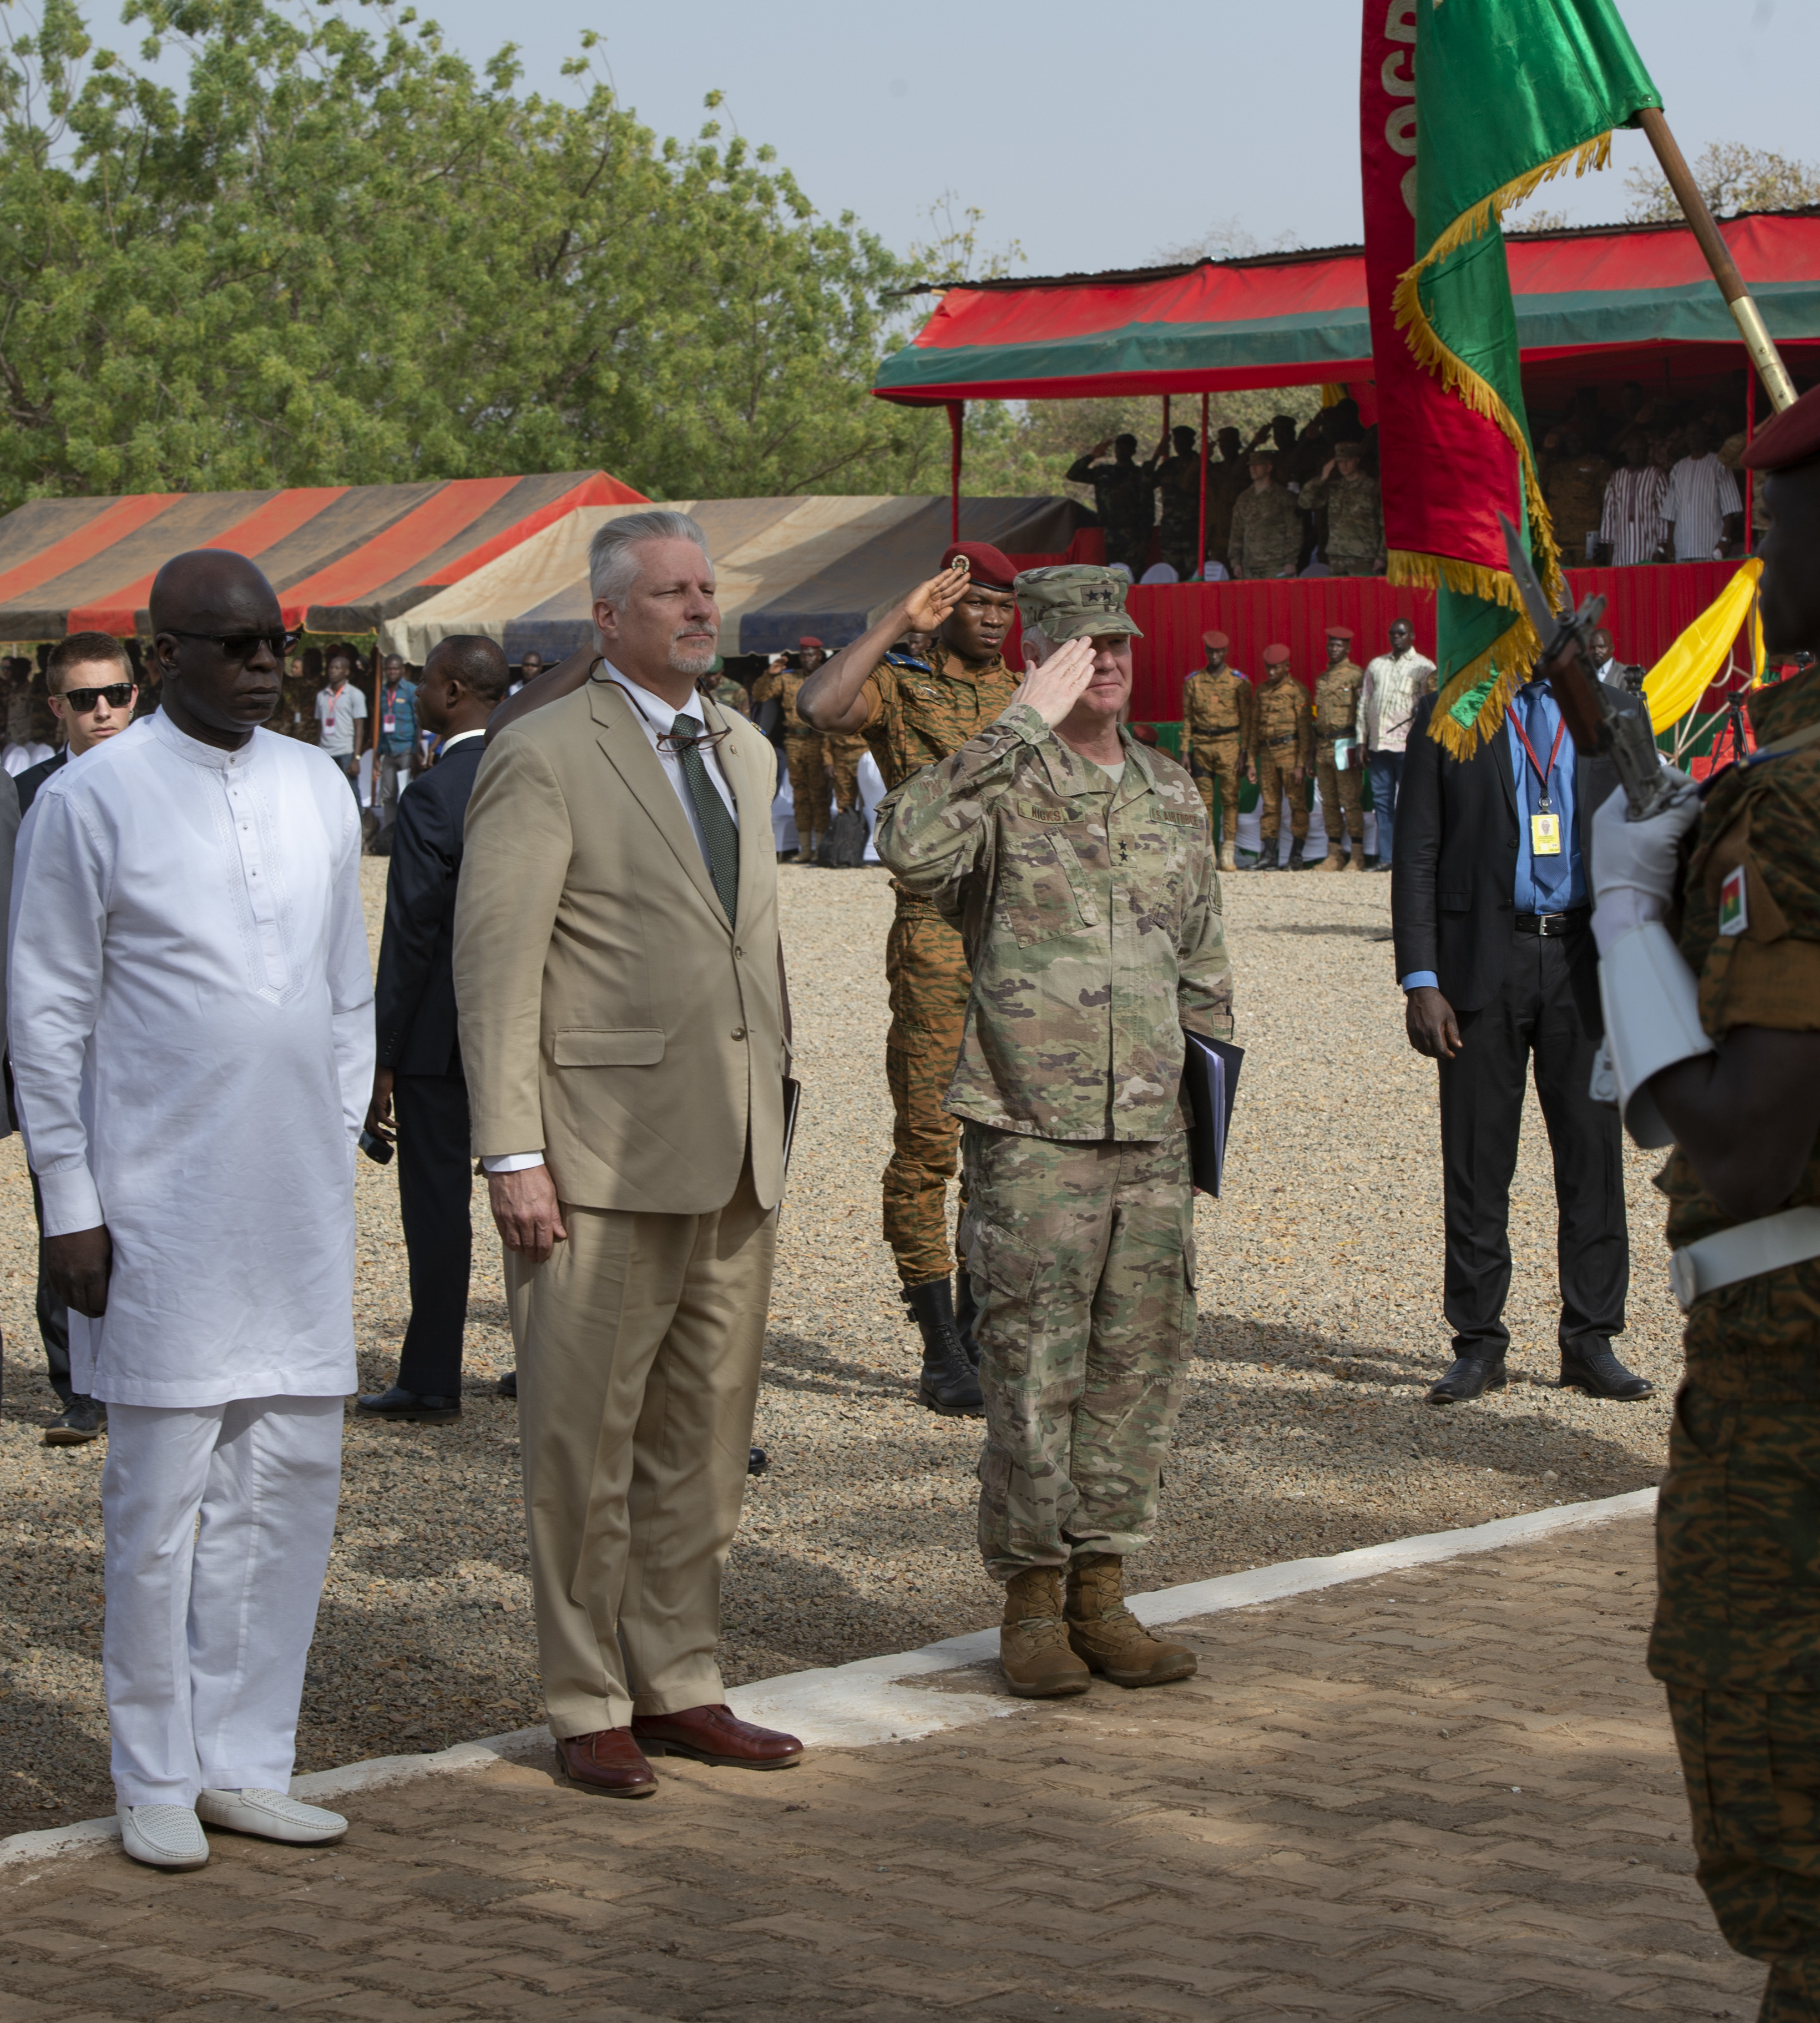 Minister of Defense and Veteran affairs, Chèrif Sy (left), U.S. Ambassador to Burkina Faso, Andrew Young, and U.S. Air Force Maj. Gen. Mark Hicks, Commander, Special Operations Command Africa (Right), render honors during a pass and review portion of the opening ceremony to Flintlock 2019.  This year's exercise is being hosted by Burkina Faso with a key outstation in Mauritania. Flintlock 2019 builds the capacity of participating nations to support regional cooperation, security and interoperability. (U.S. Navy photo by MC2 (SW/AW) Evan Parker / released)